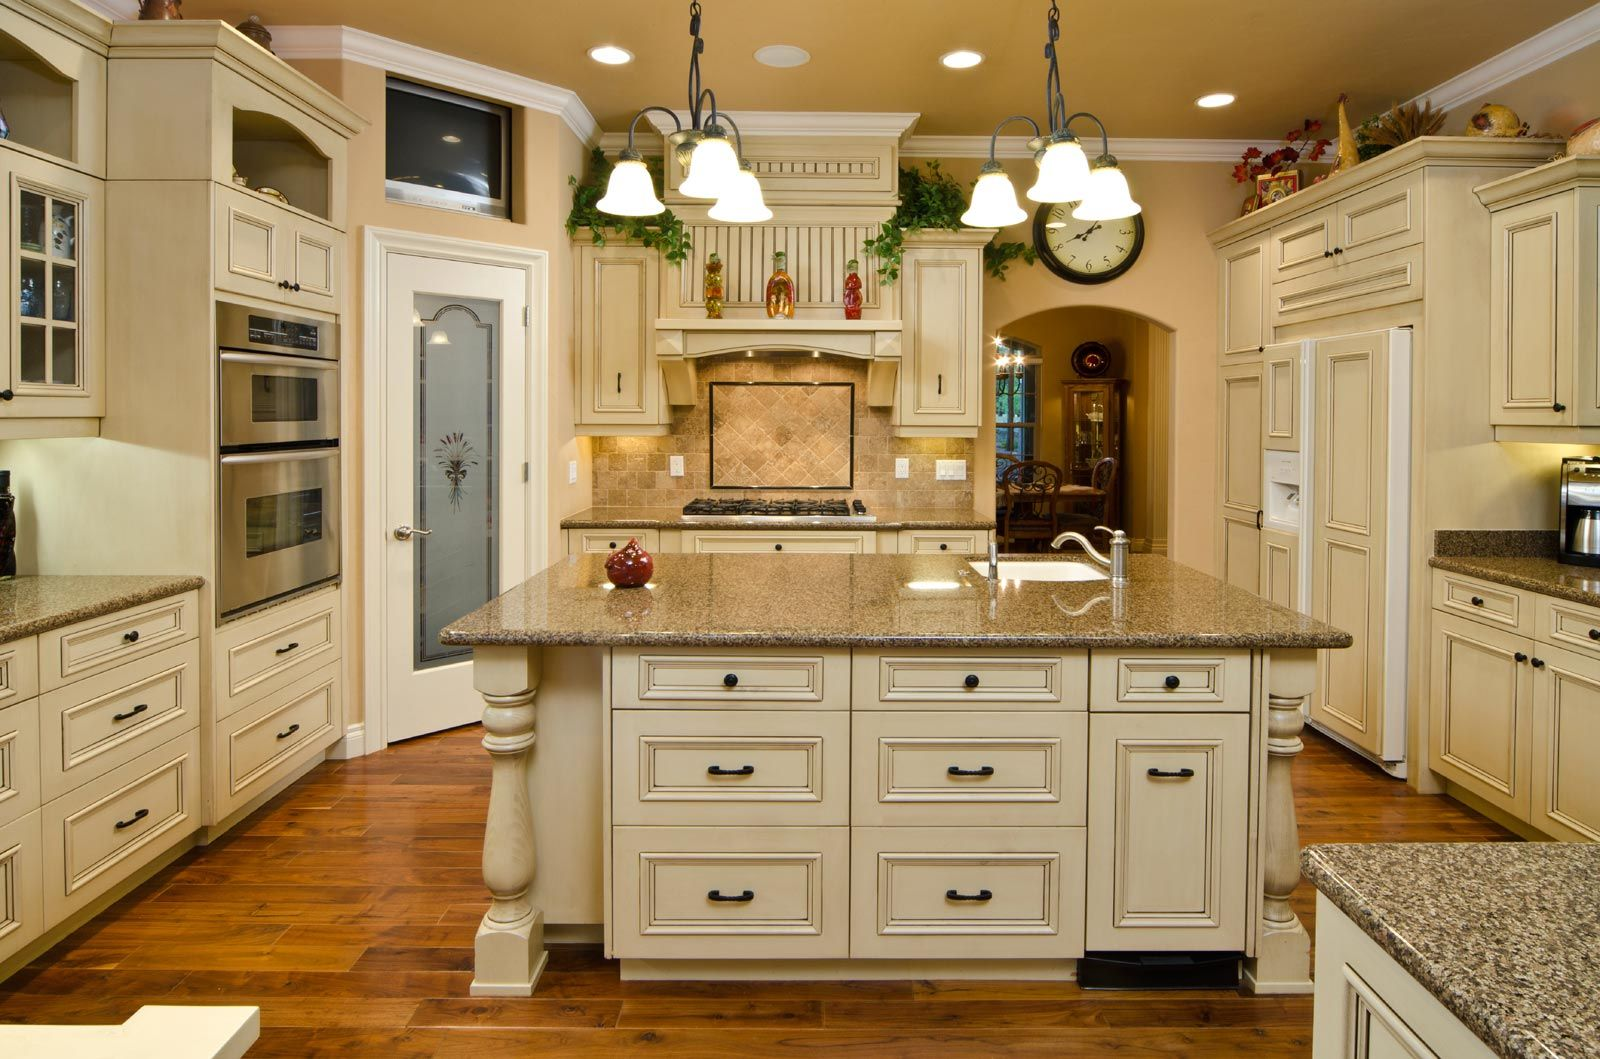 20 Magnificent French Country Kitchen Designs Antique White Kitchen Classic Kitchen Cabinets Antique White Kitchen Cabinets